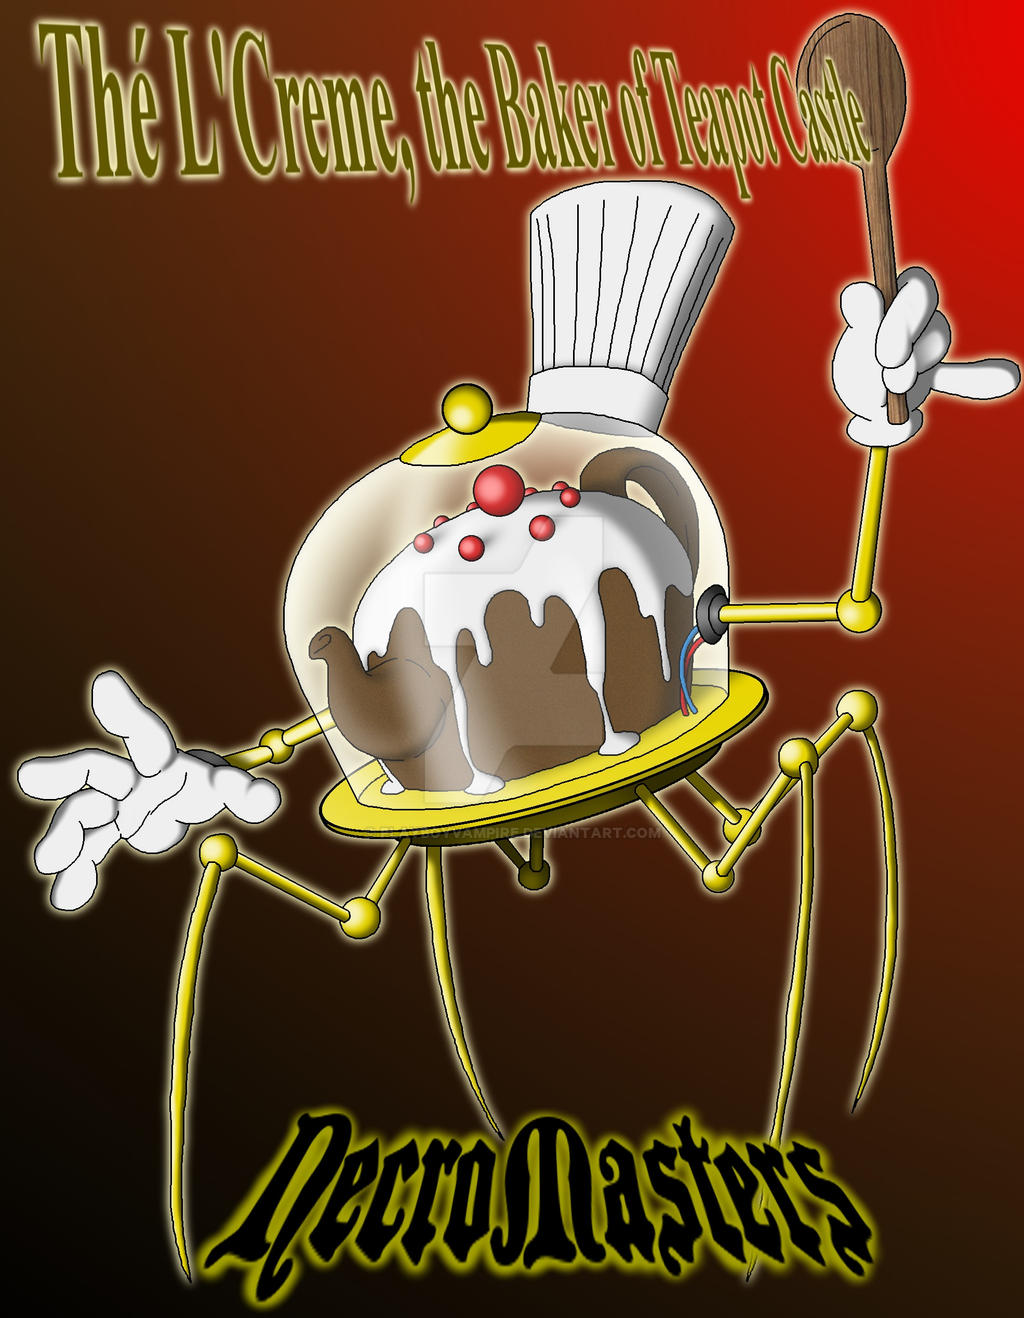 The L'Creme, the Baker of Teapot Castle by PlayboyVampire